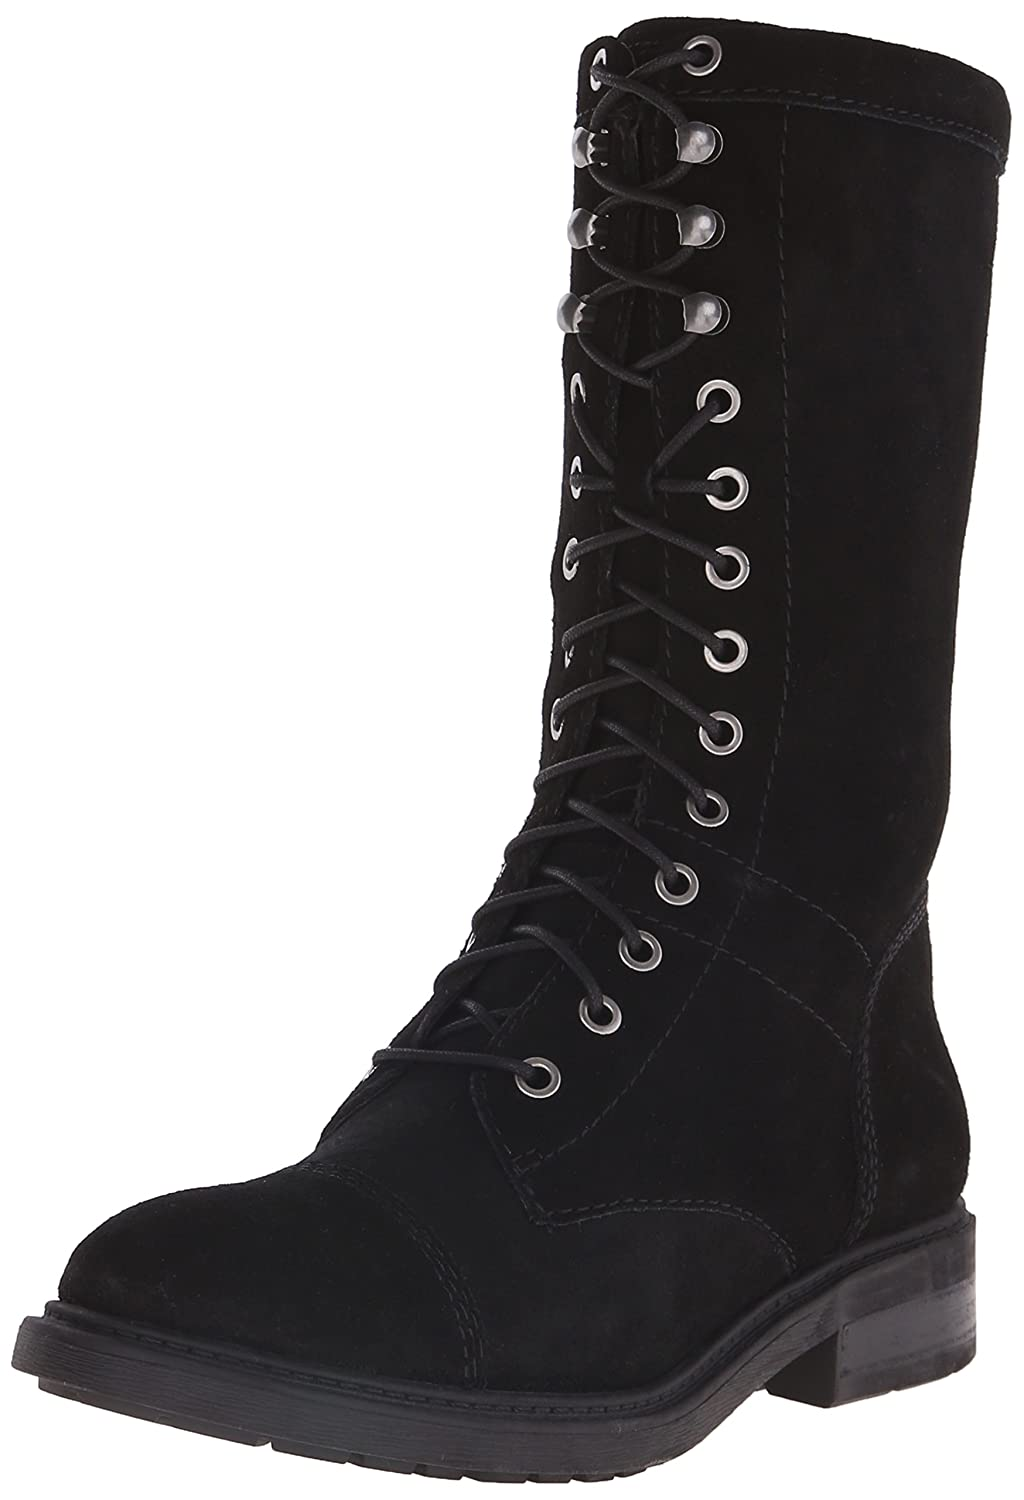 Nine West Women's Gunner Suede Lace-up Ankle Boot Black